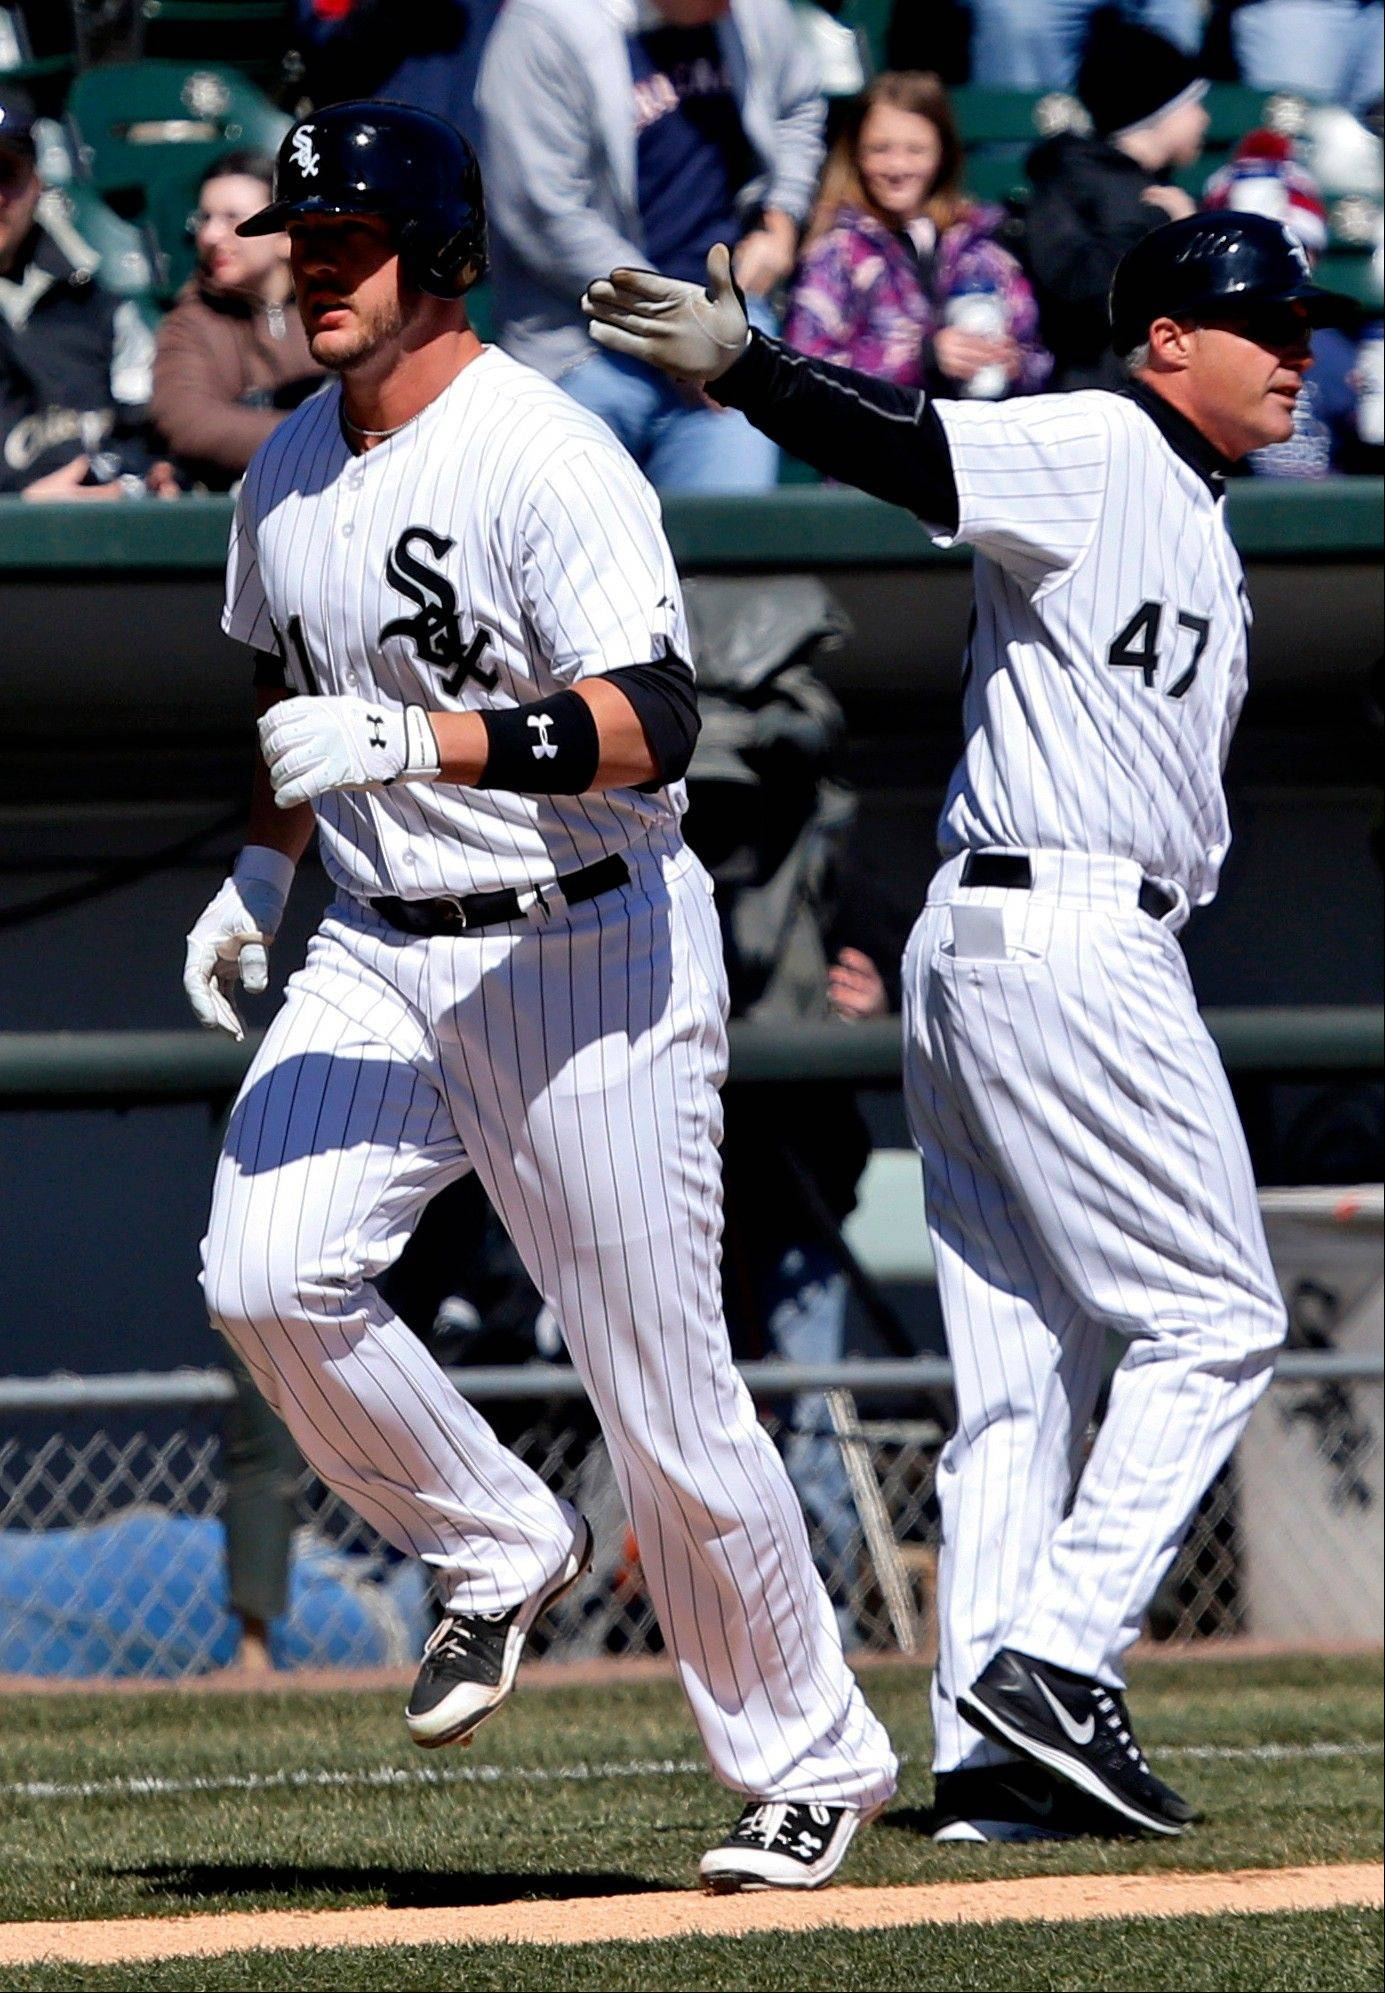 Associated PressTyler Flowers rounds third base Wednesday after hitting his second homer in two games. The White Sox catcher has also called two sparkling games in which the pitchers have allowed only 1 earned run in 18 innings.